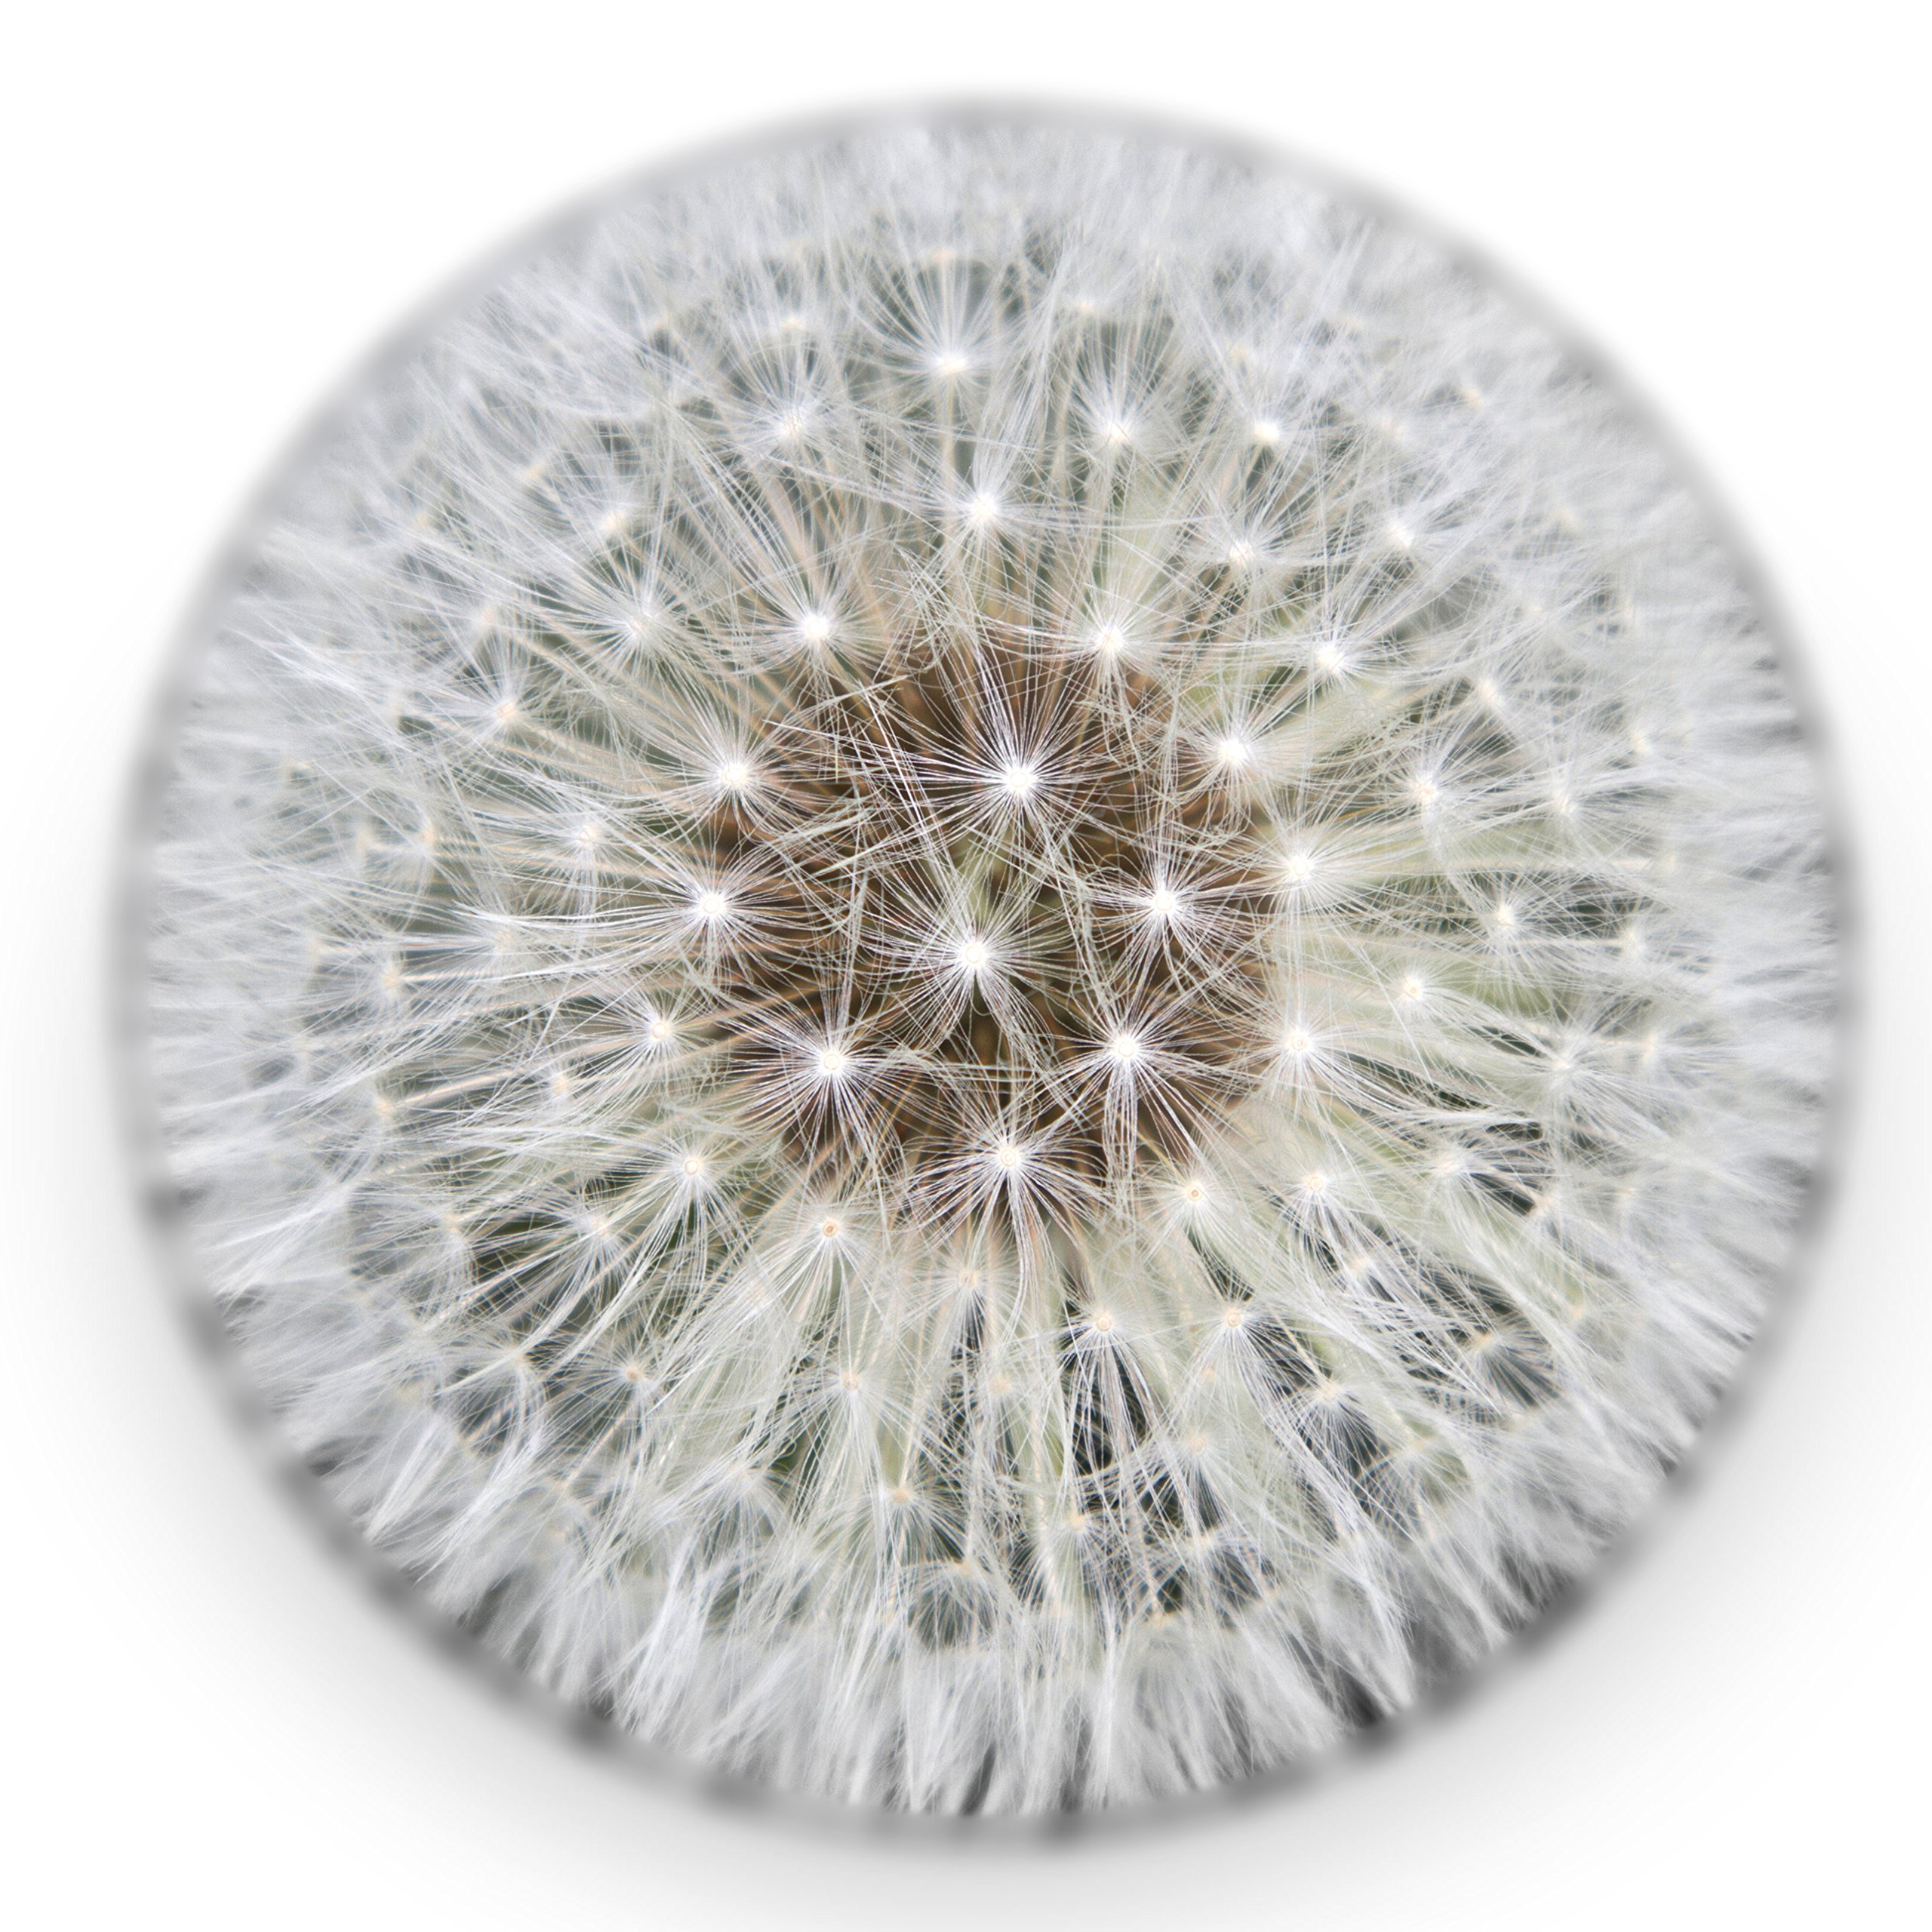 Real Dandelion Paperweight (X-Large) - Made from a Real Dandelion Seed Puff by DANDELION COLLECTIVE